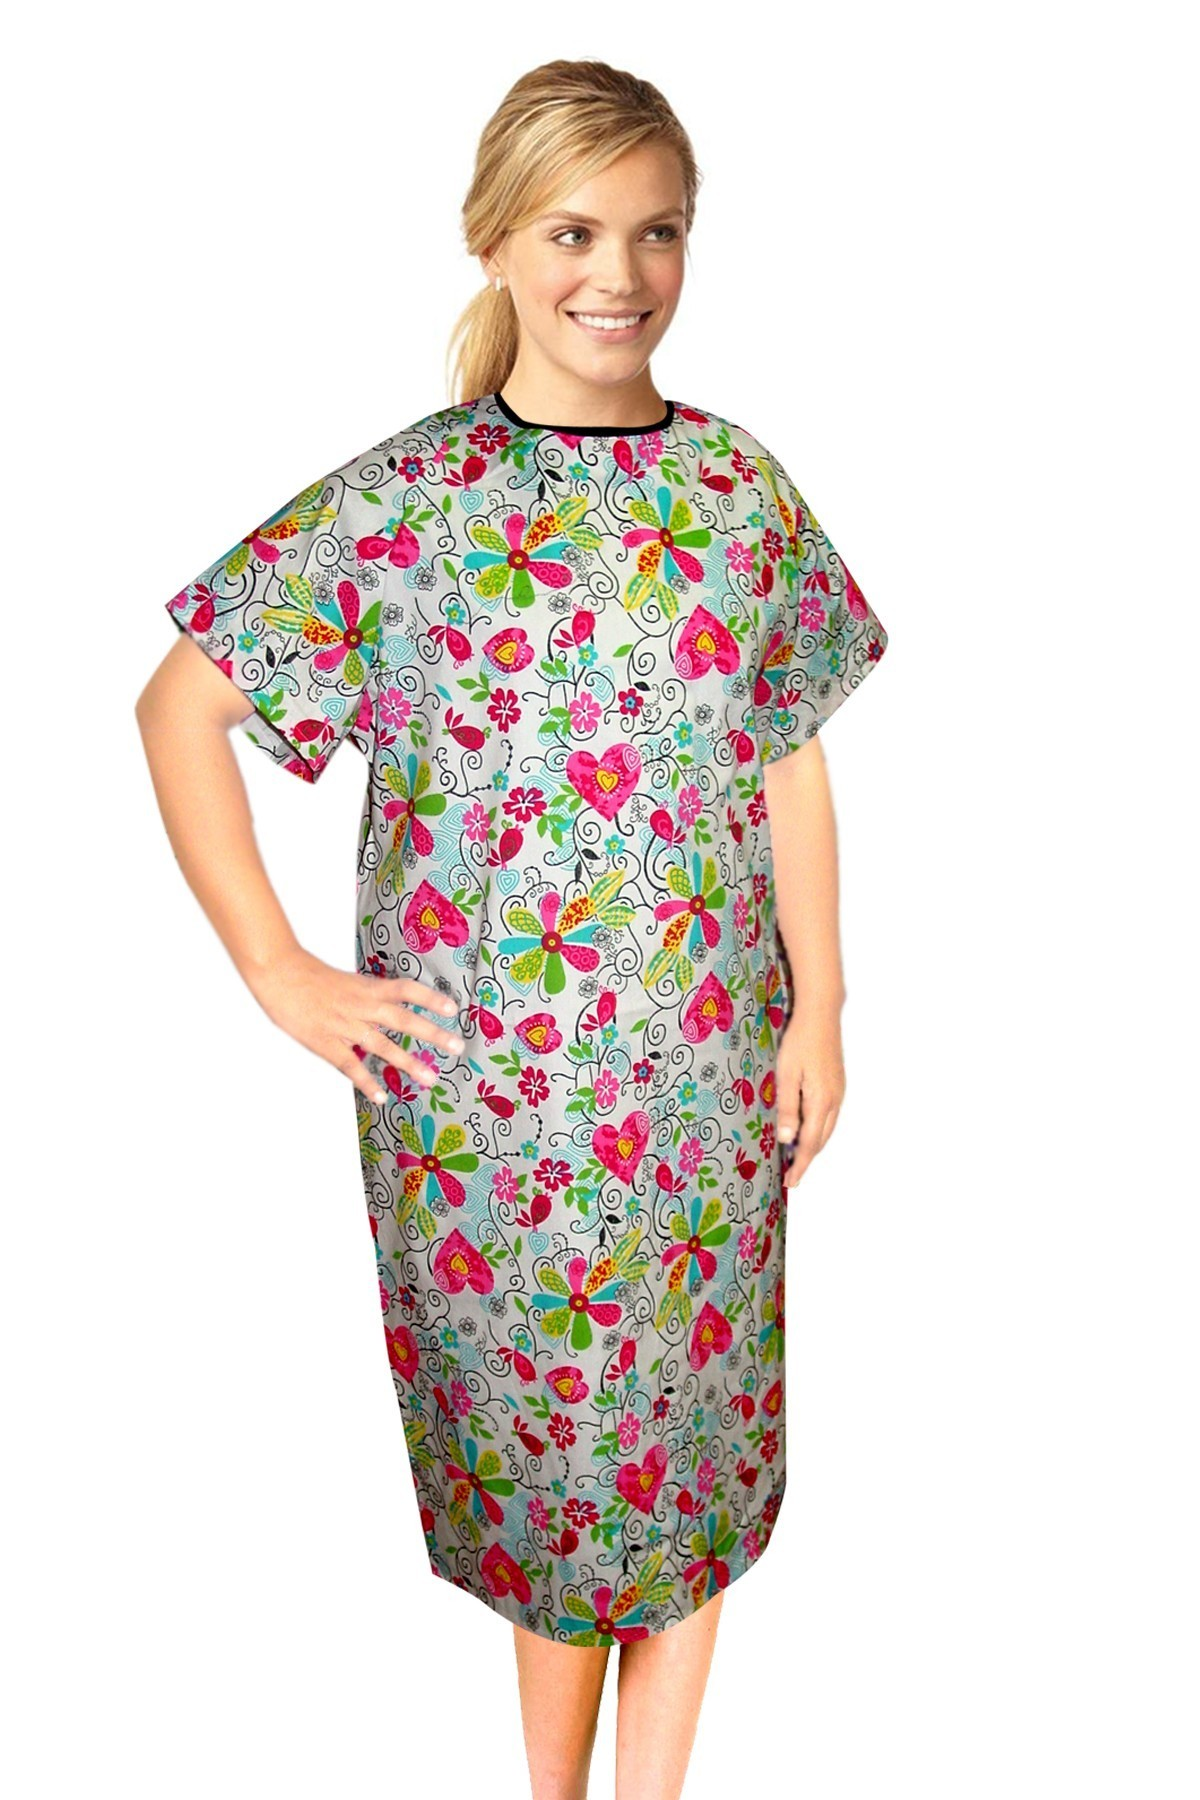 Patient gown half sleeve printed back open, tie-able  from two points in big heart flower Print Chest 54 Inches Length 45 inches $6.25 and Chest 80 inches Length 49 inches $9.25